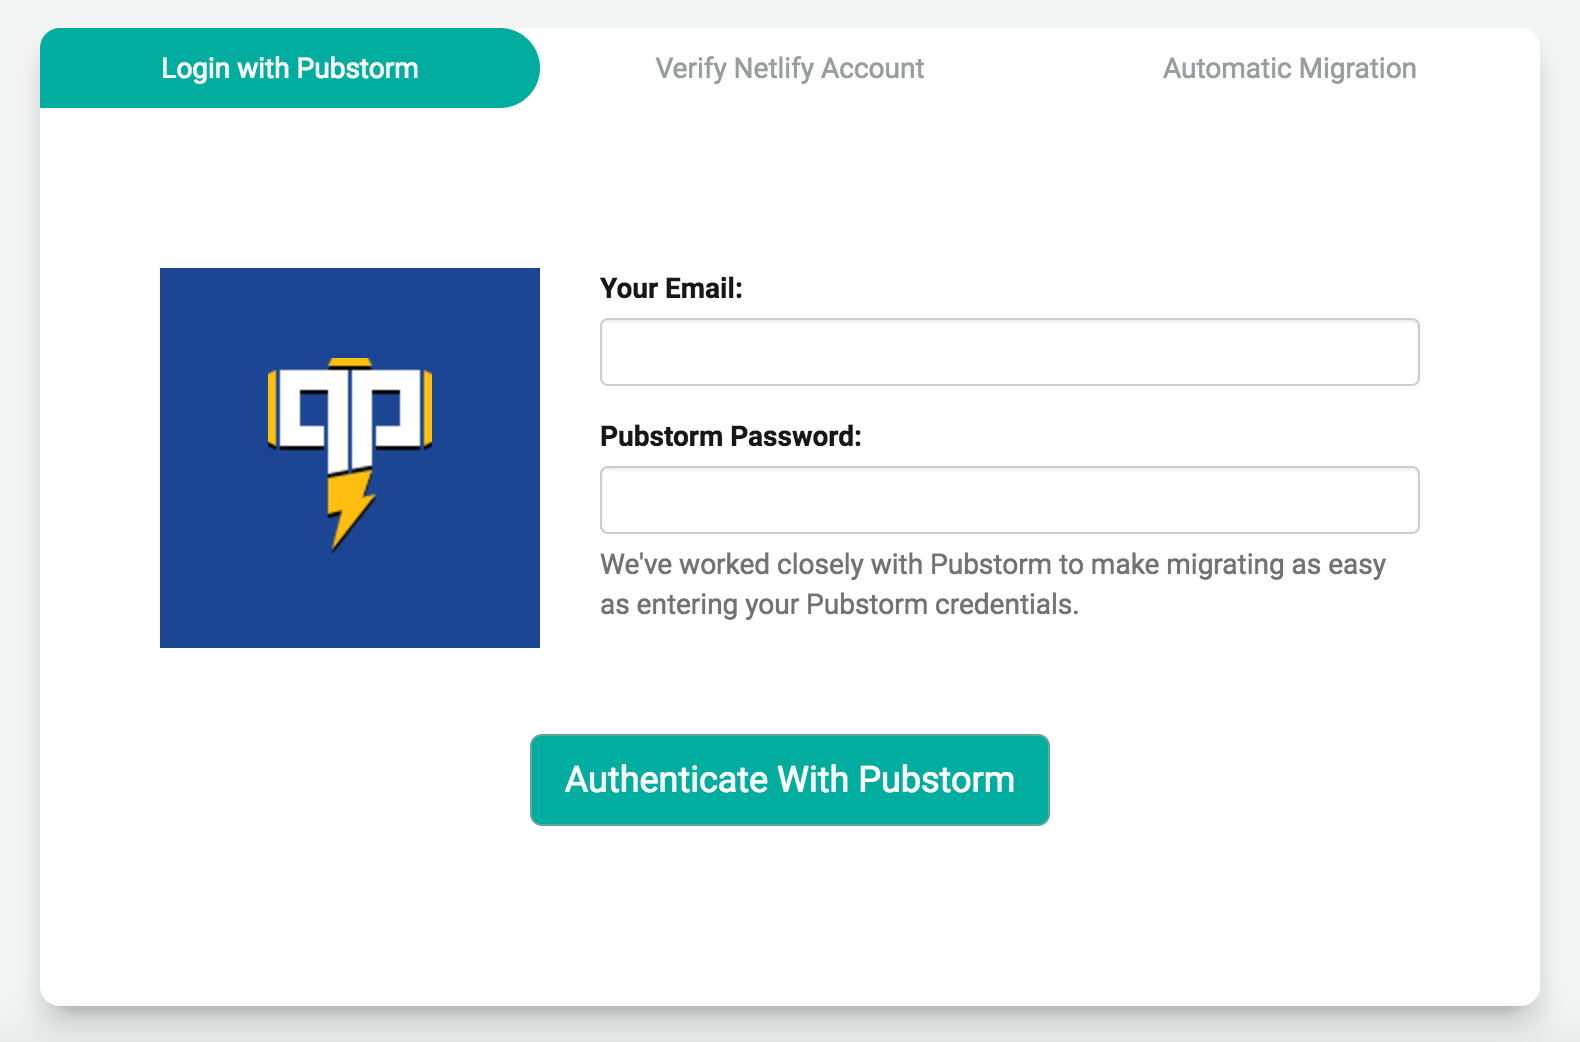 Automatica Migration to Netlify